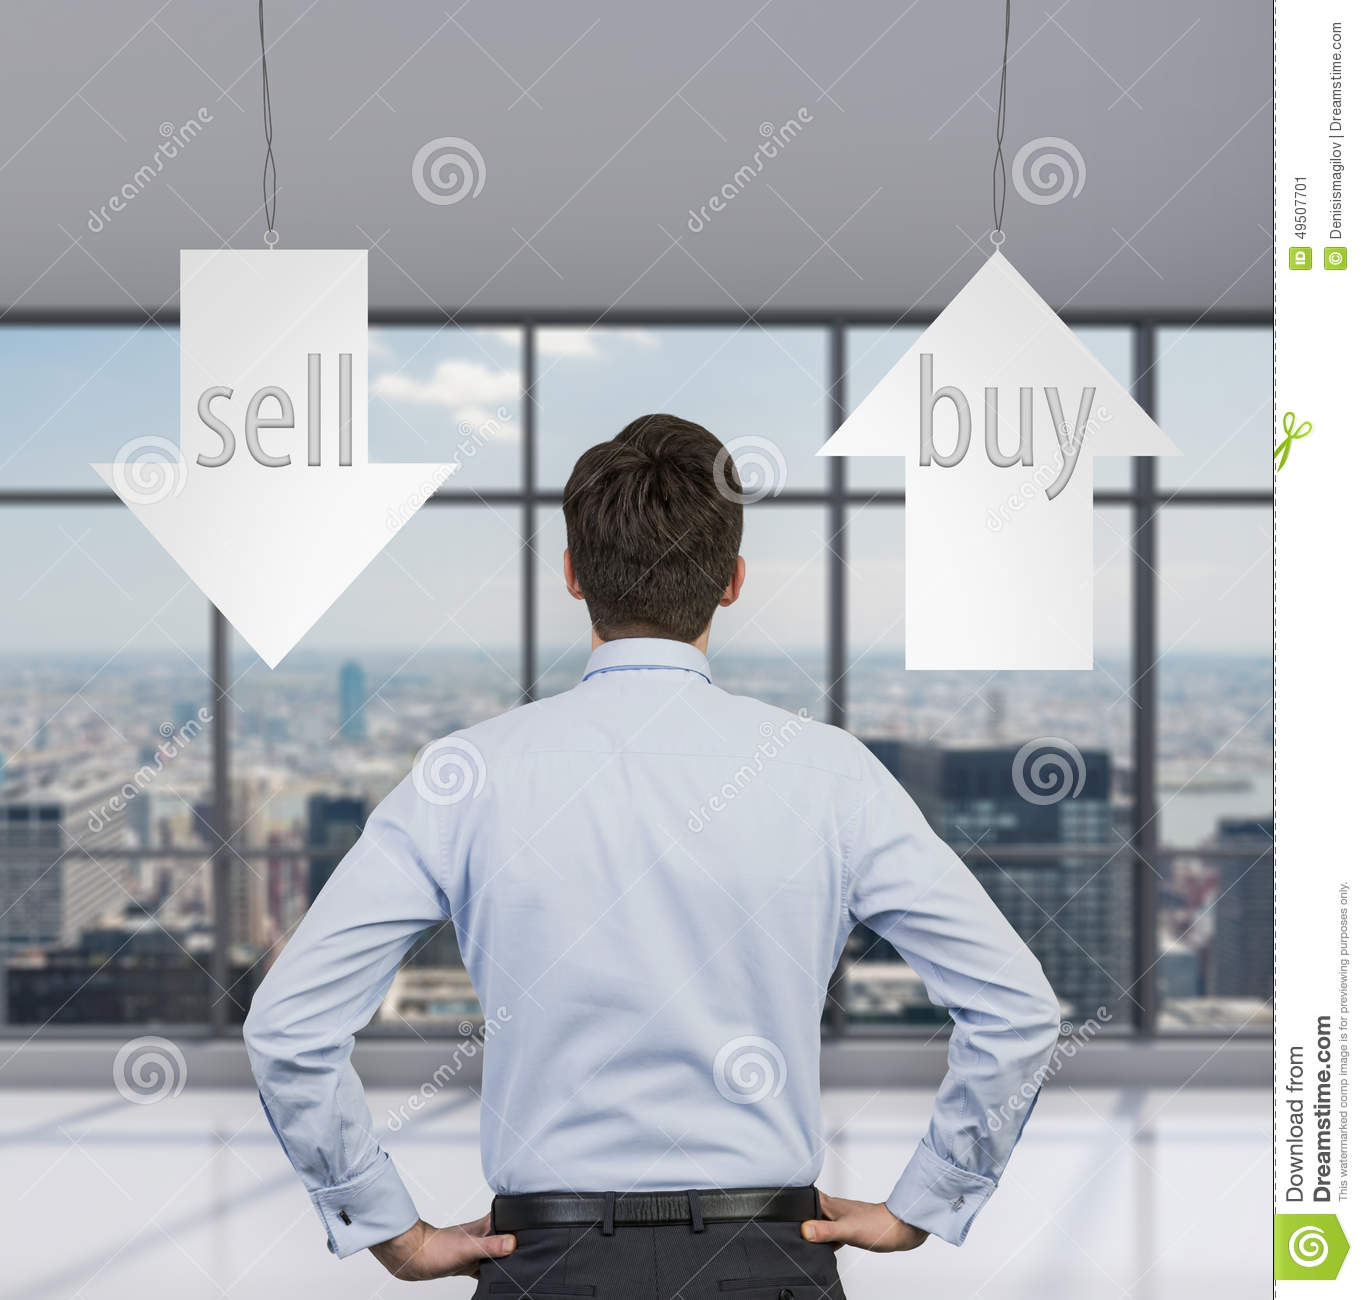 how to sell stock images